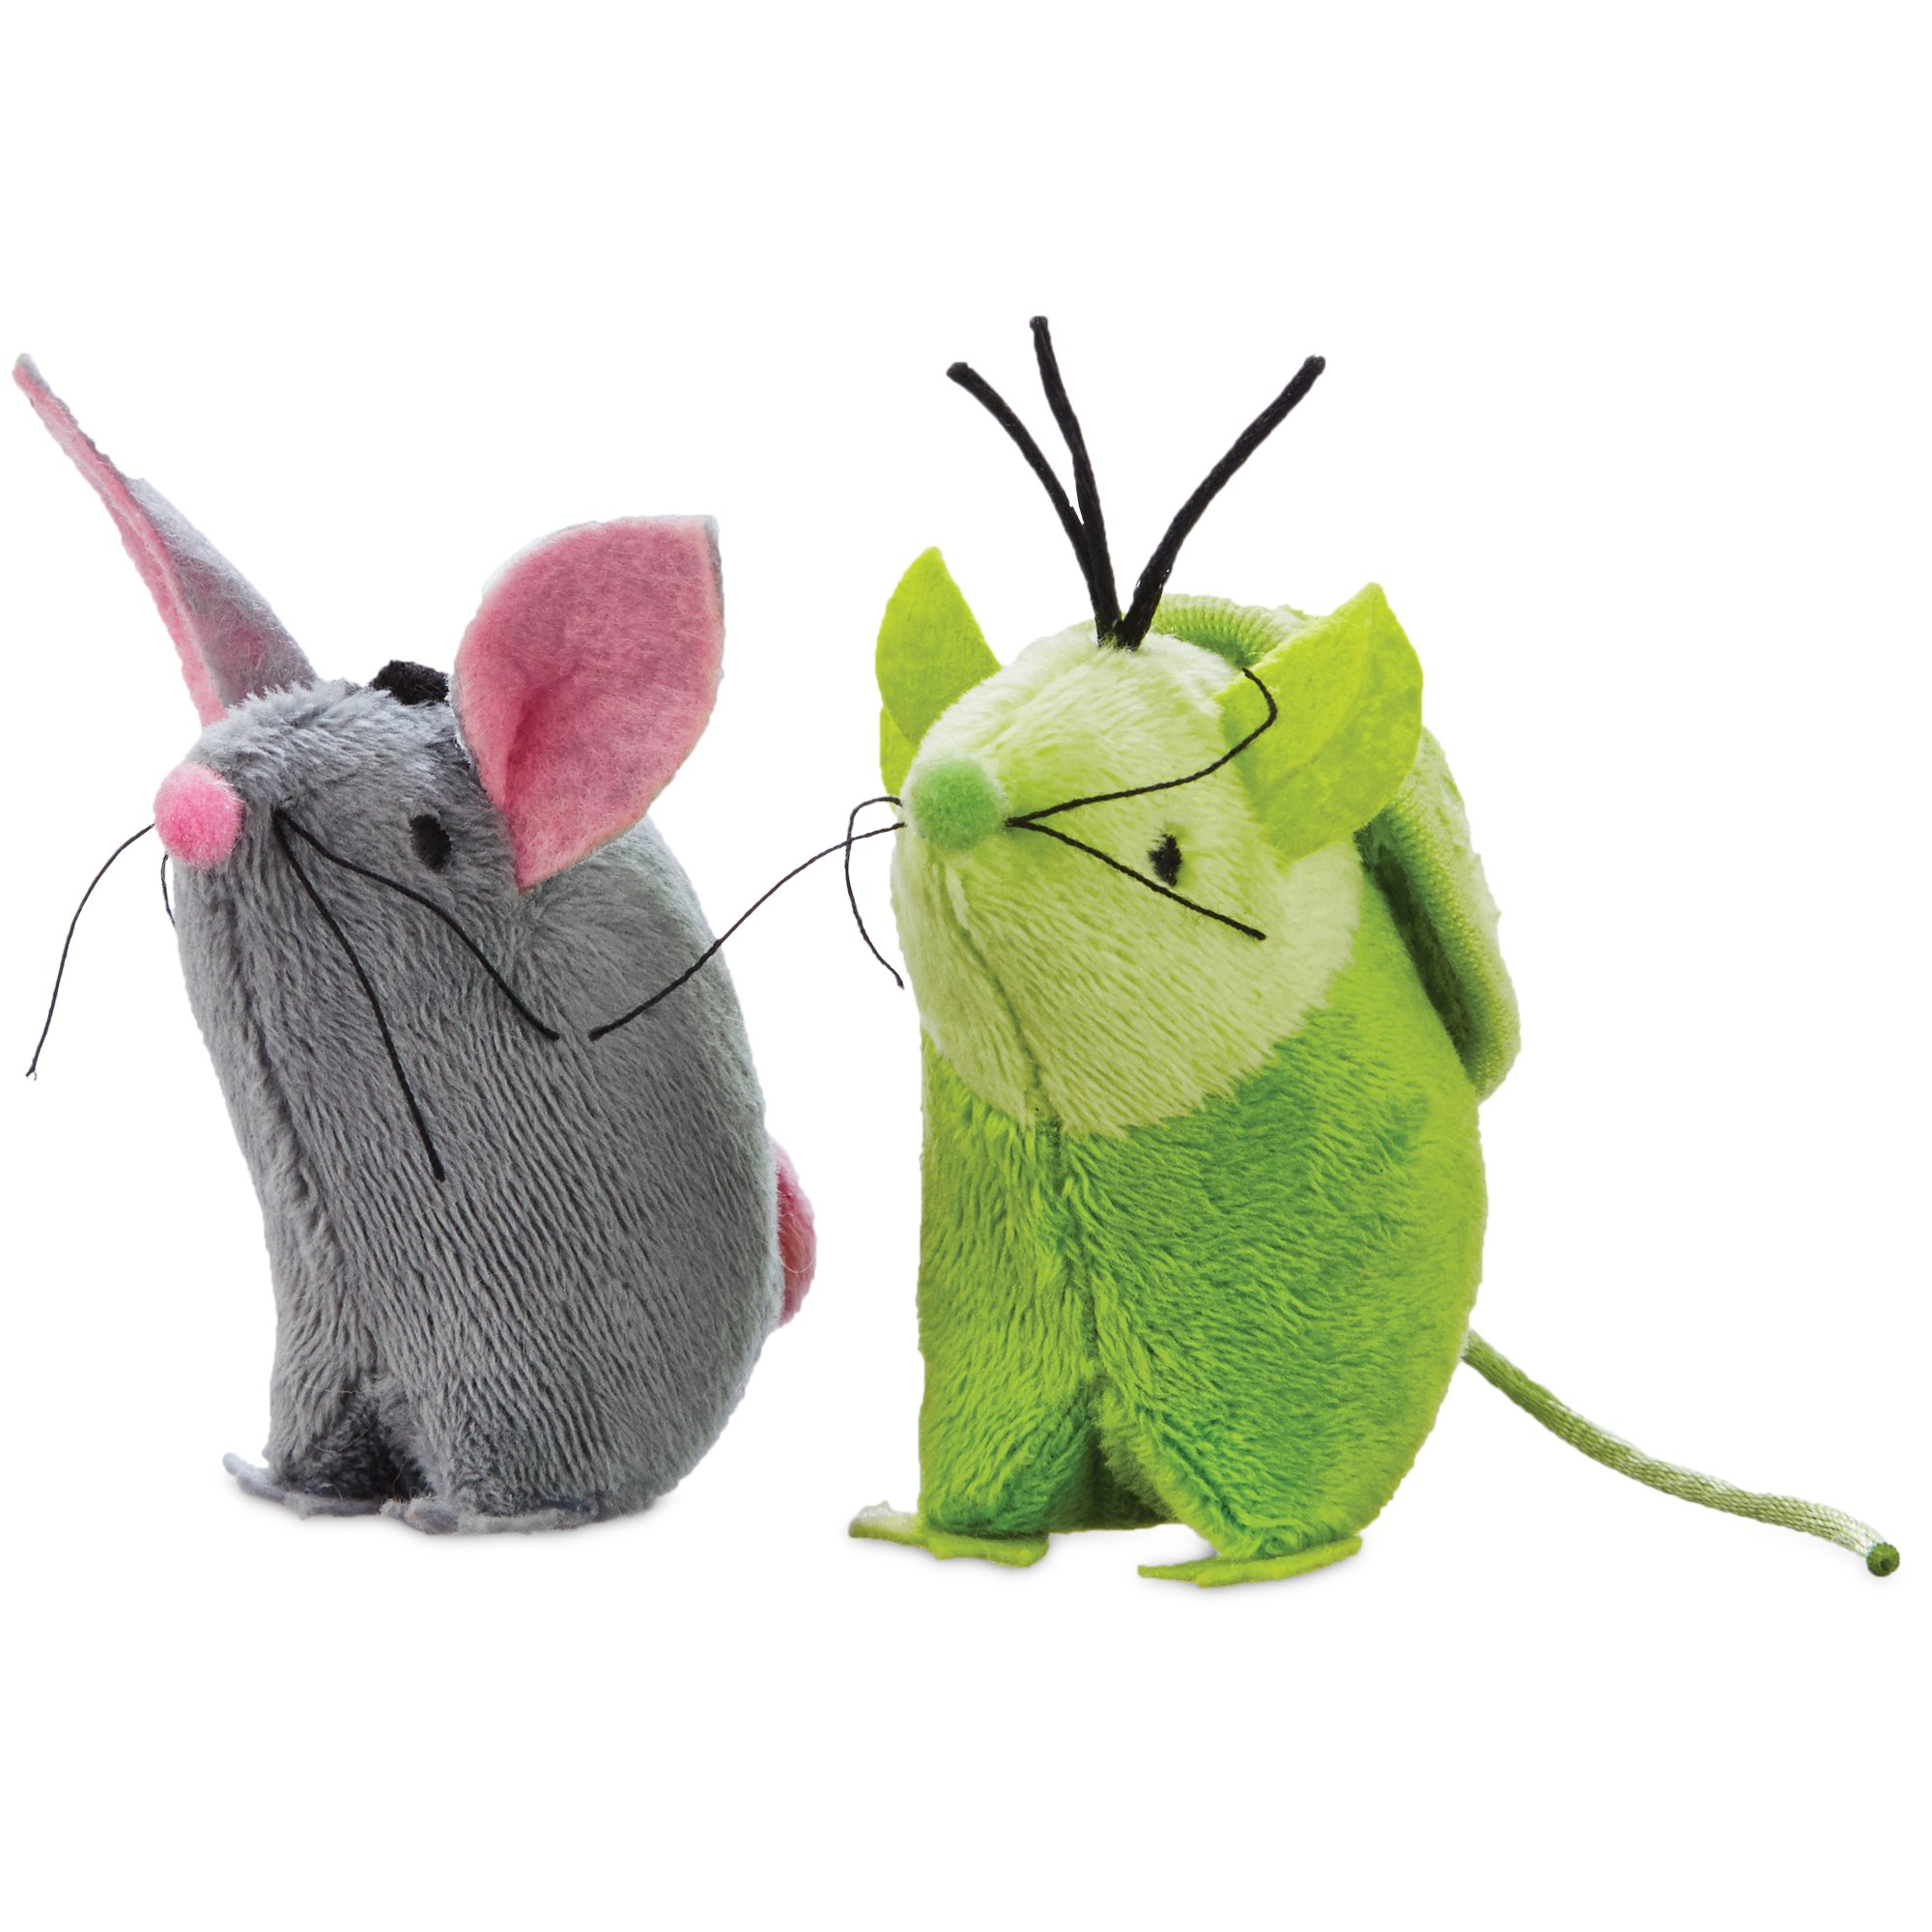 Dr. Seuss What Pet Should I Get? Bunny and Turtle 2 Pack Cat Toy